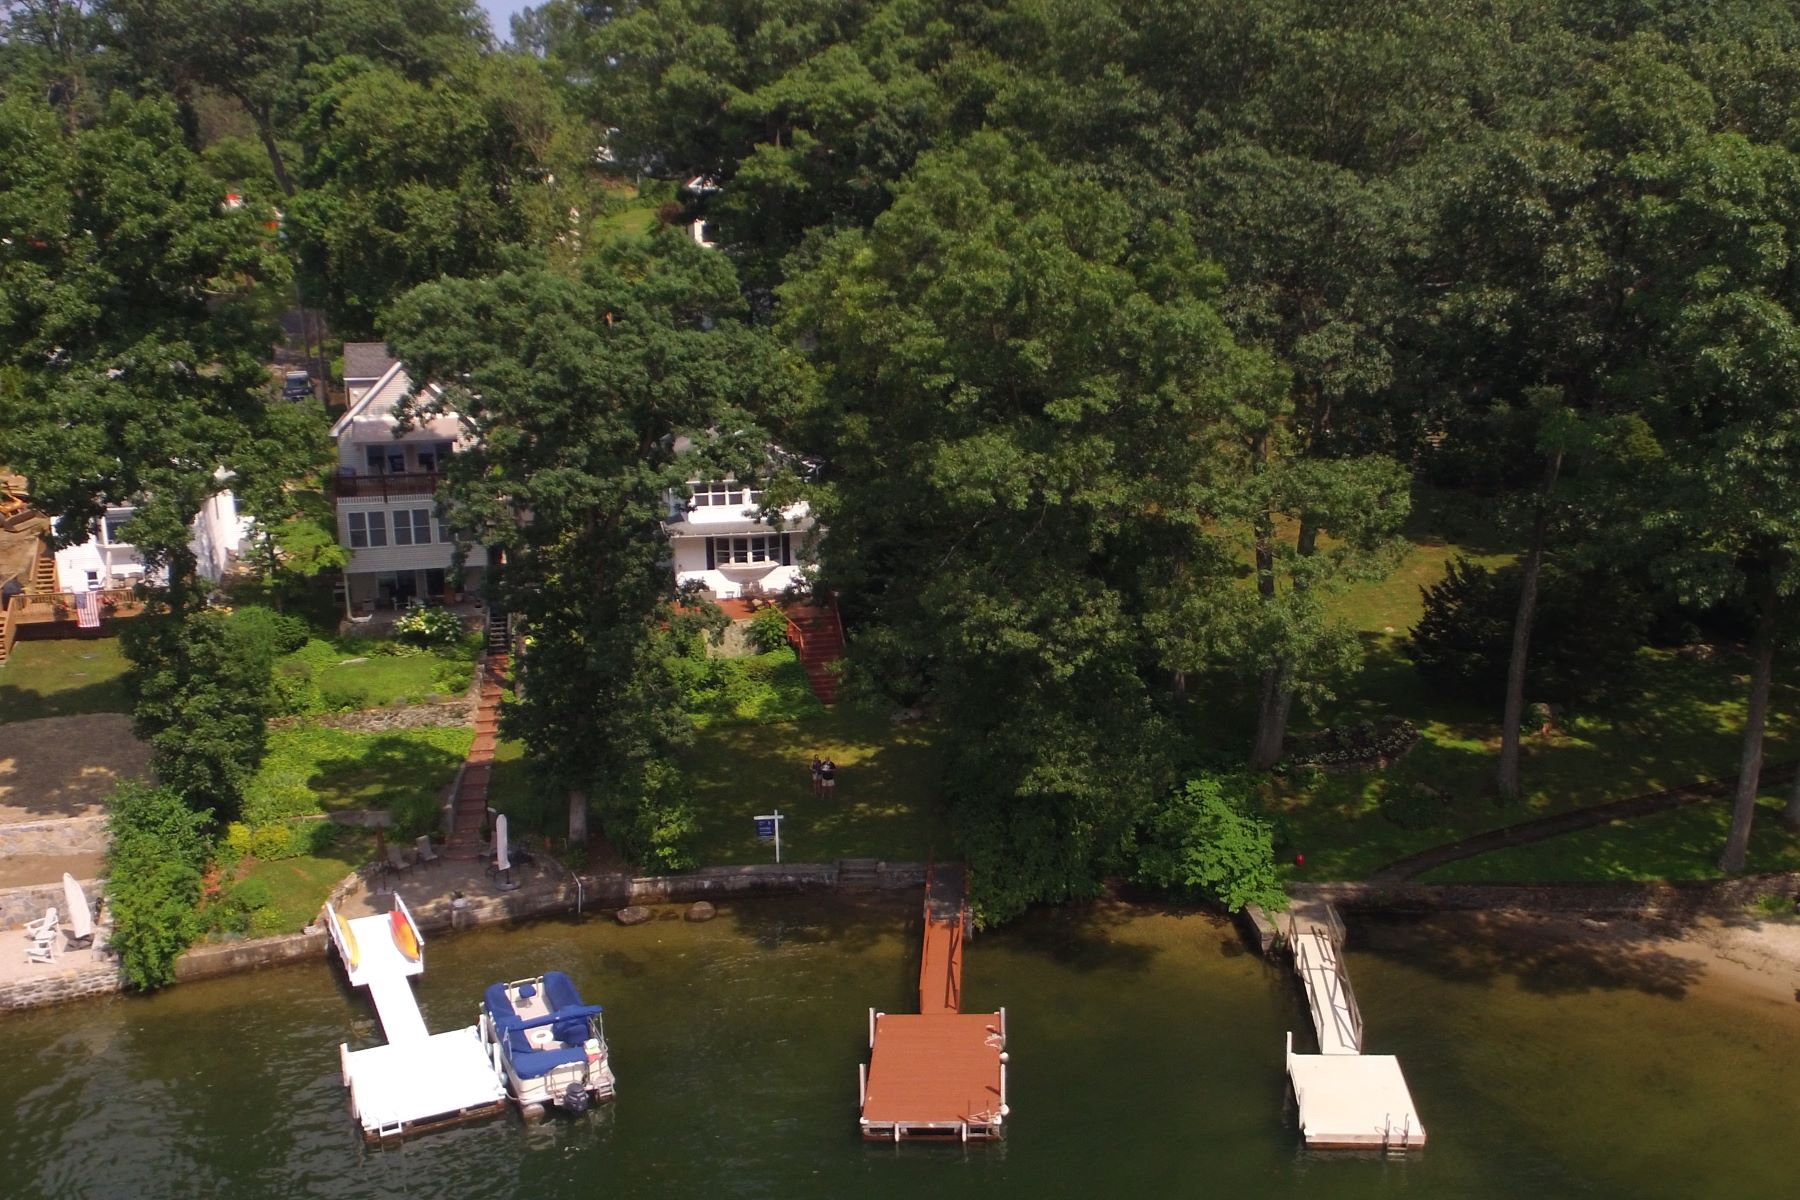 Maison unifamiliale pour l Vente à Direct Unobstructed Waterfront with Gorgeous Western Views! 21 Boulder Ridge Danbury, Connecticut 06811 États-Unis